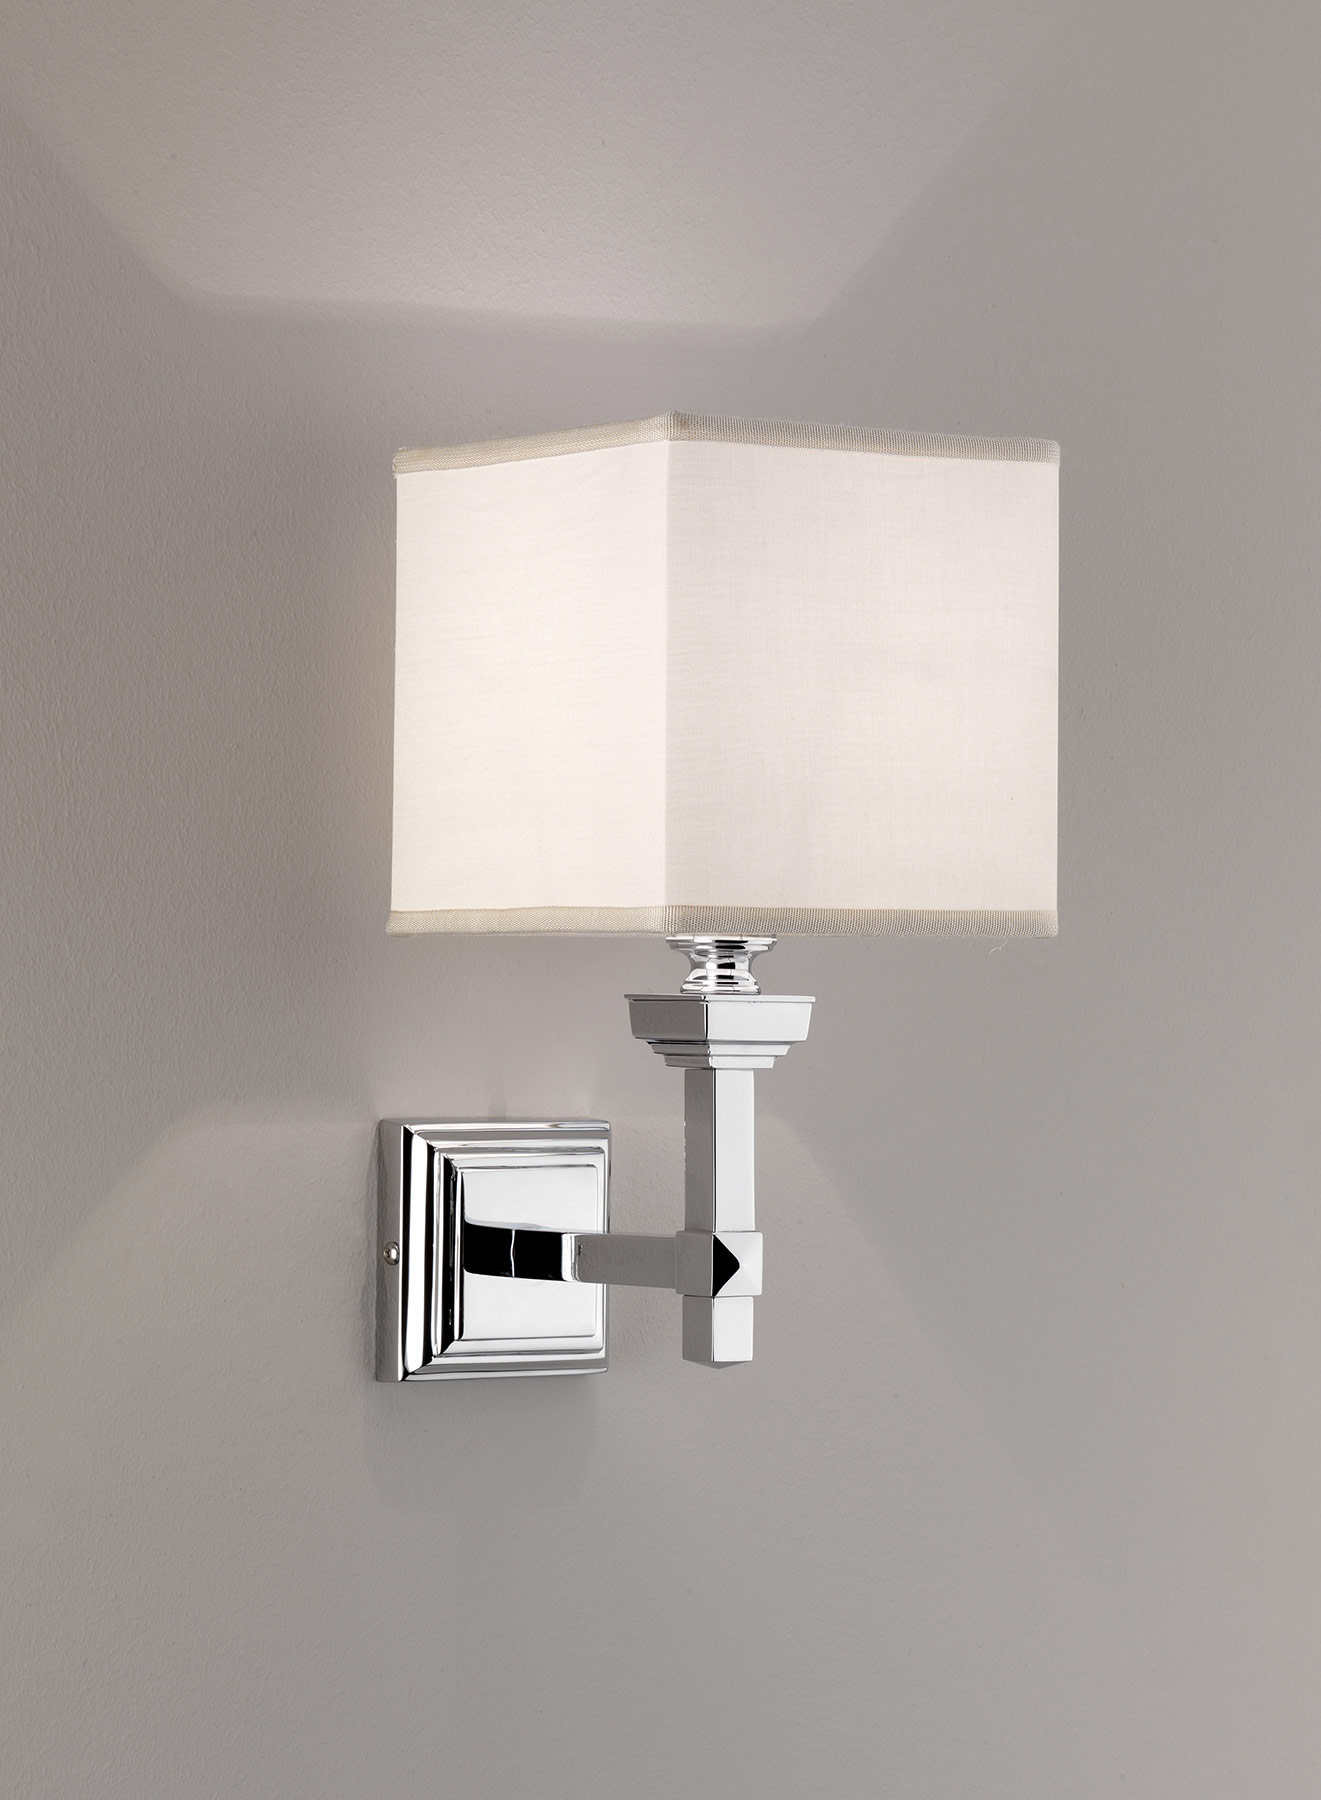 Transitional Time Wall Mount Lamp